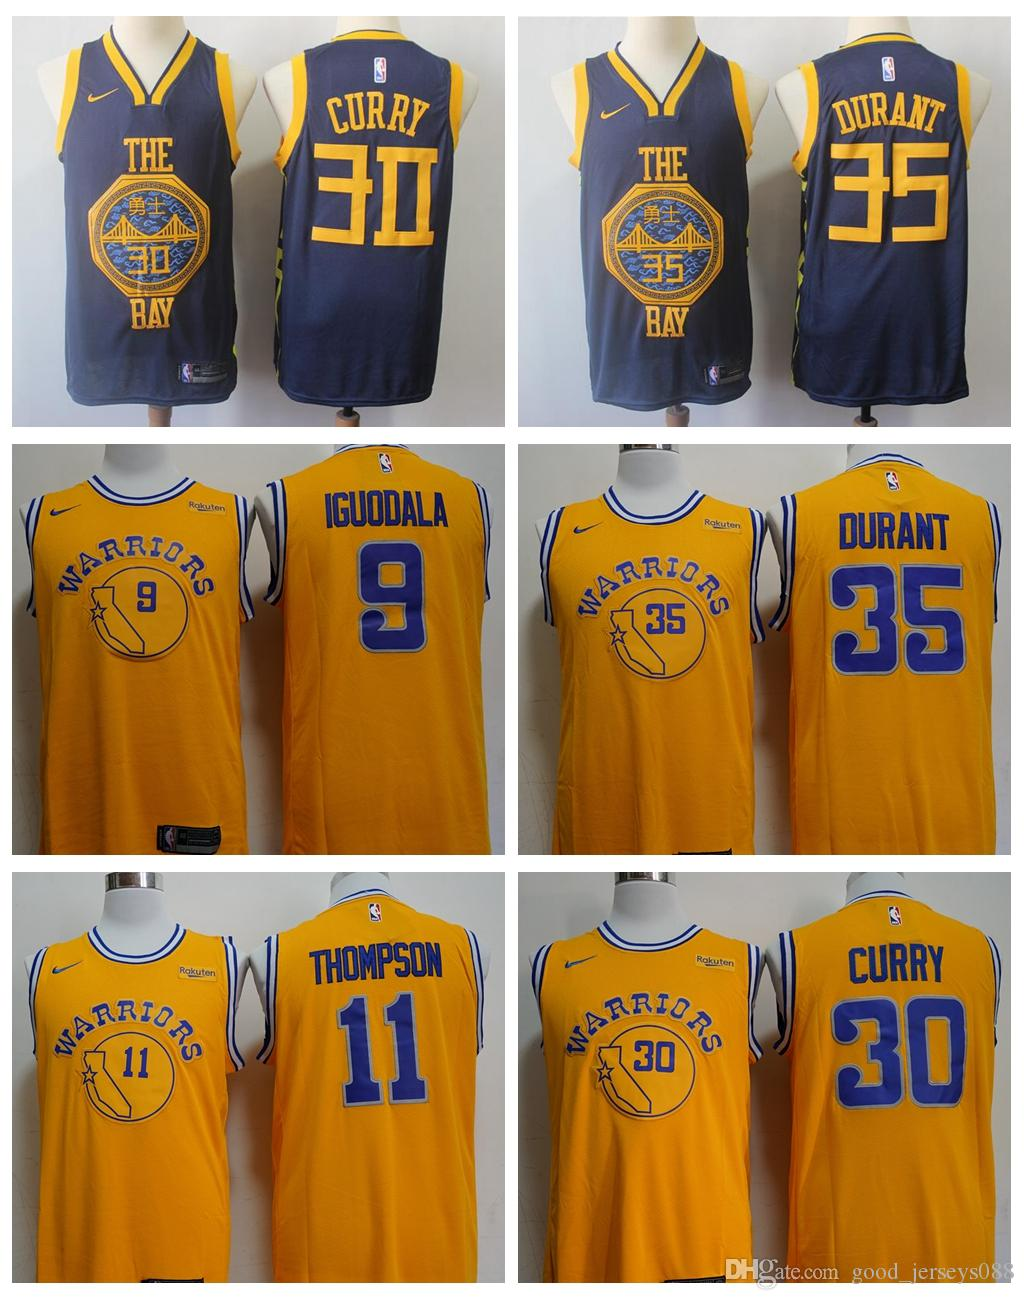 a46ab524d121 2019 Newest 2019 Golden State Basketball Warriors Jersey 35 Kevin Durant 30  Stephen Curry 11 Klay Thompson 9 Andre Iguodala Stitched Jerseys From  Sagala01